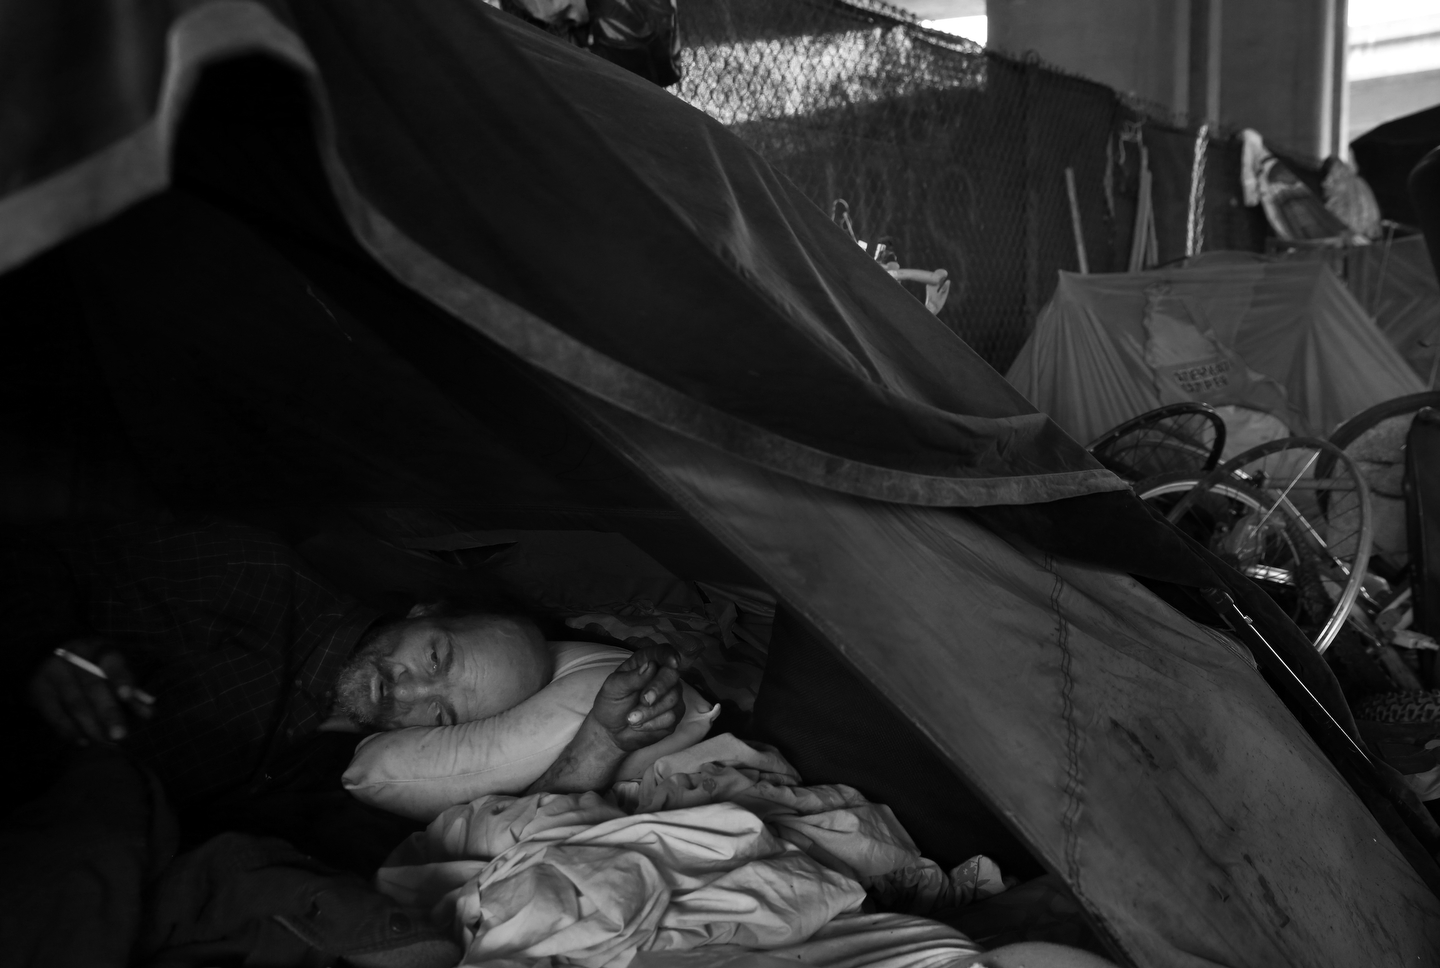 Jeffrey {quote}New York{quote} Hill rests in his tent underneath an overpass on Brush street Aug. 10, 2016 in Oakland, Calif. Hill has been homeless for about six years and has recently seen a big increase in homeless people moving into the area in Oakland.